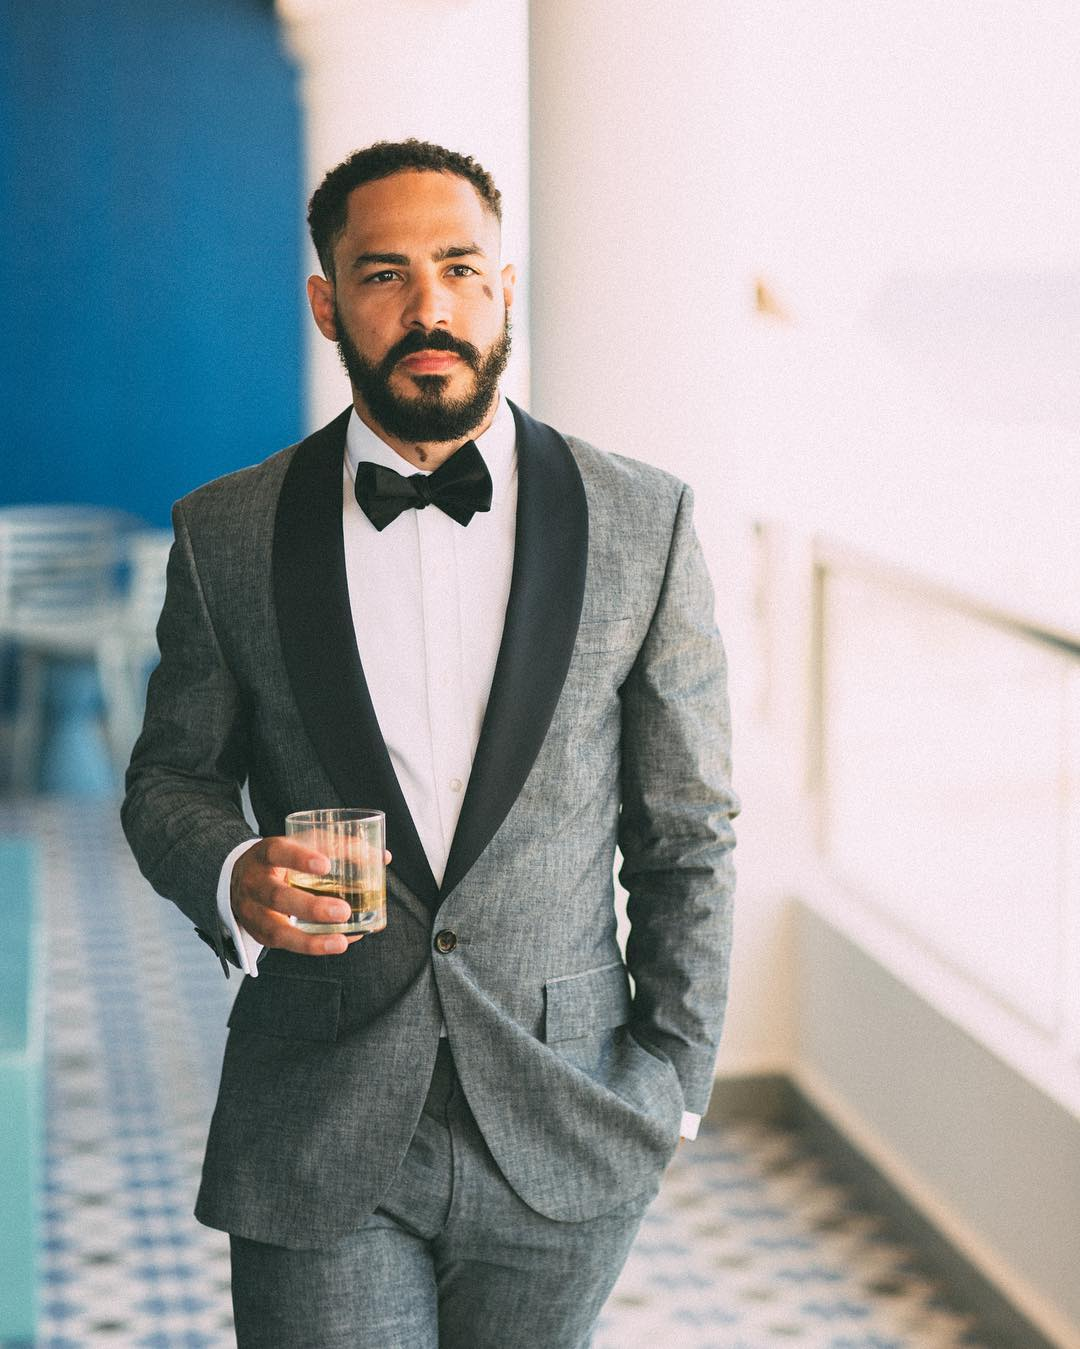 Portrait of a groom dressed in a tuxedo walking towards the camera while holding a glass